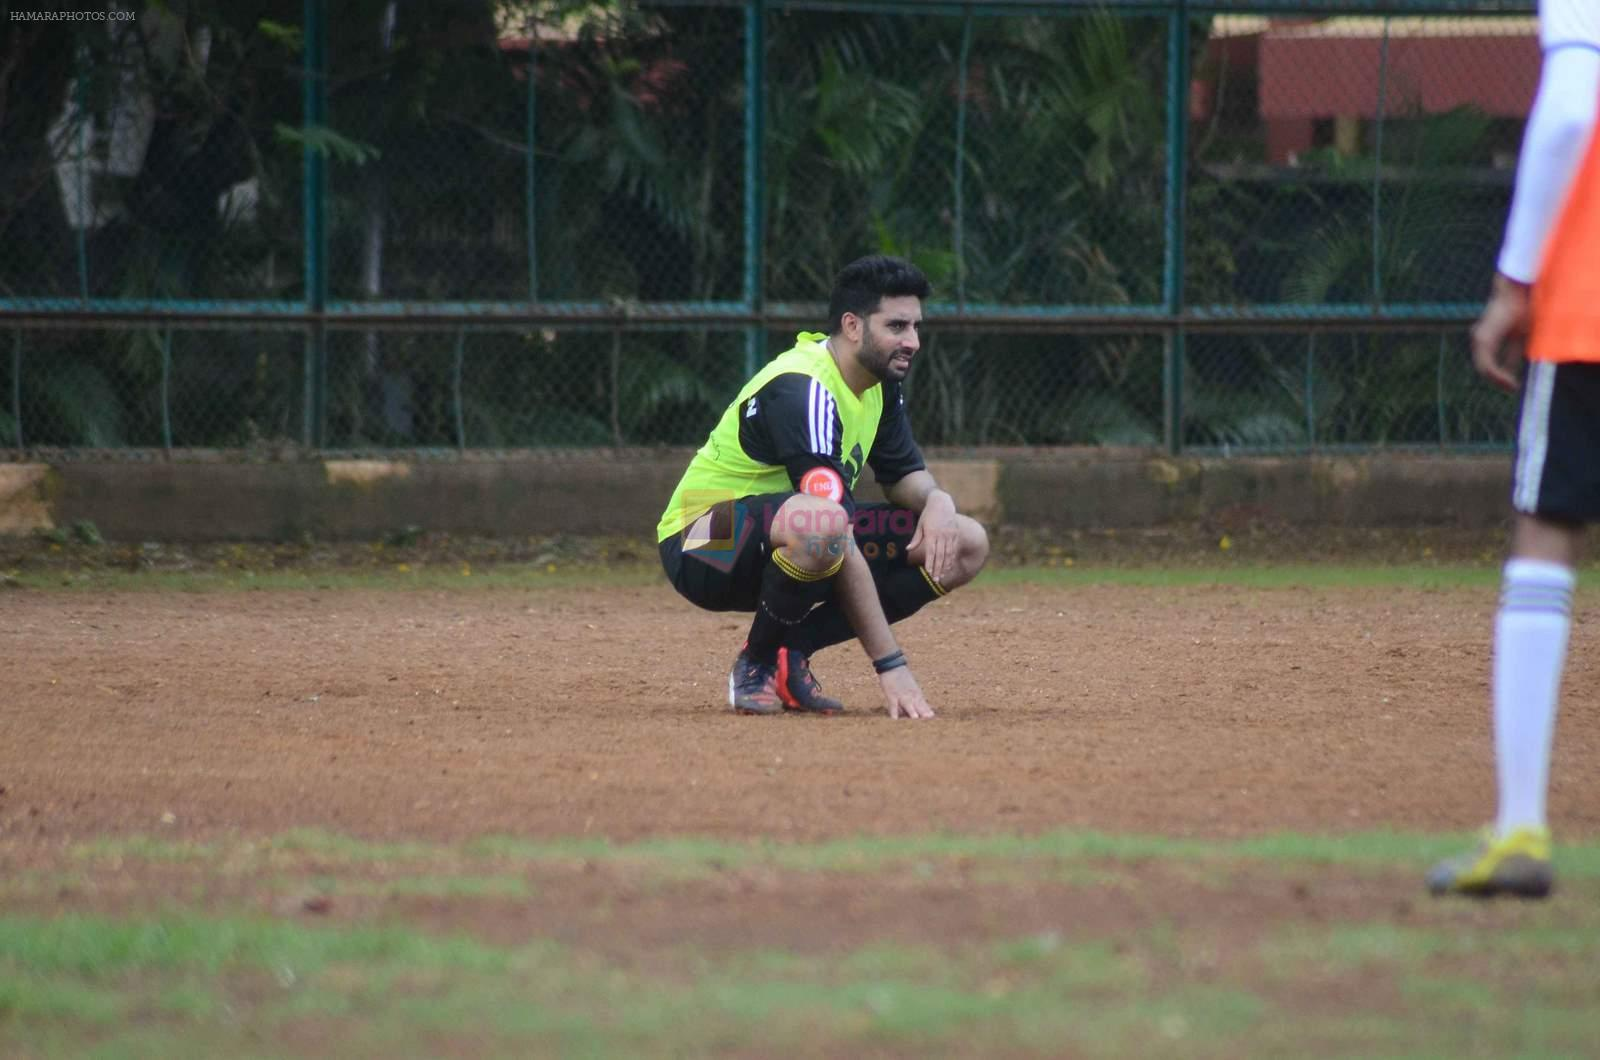 Abhishek Bachchan snapped at all star football practice session in Bandra, Mumbai on 28th June 2015